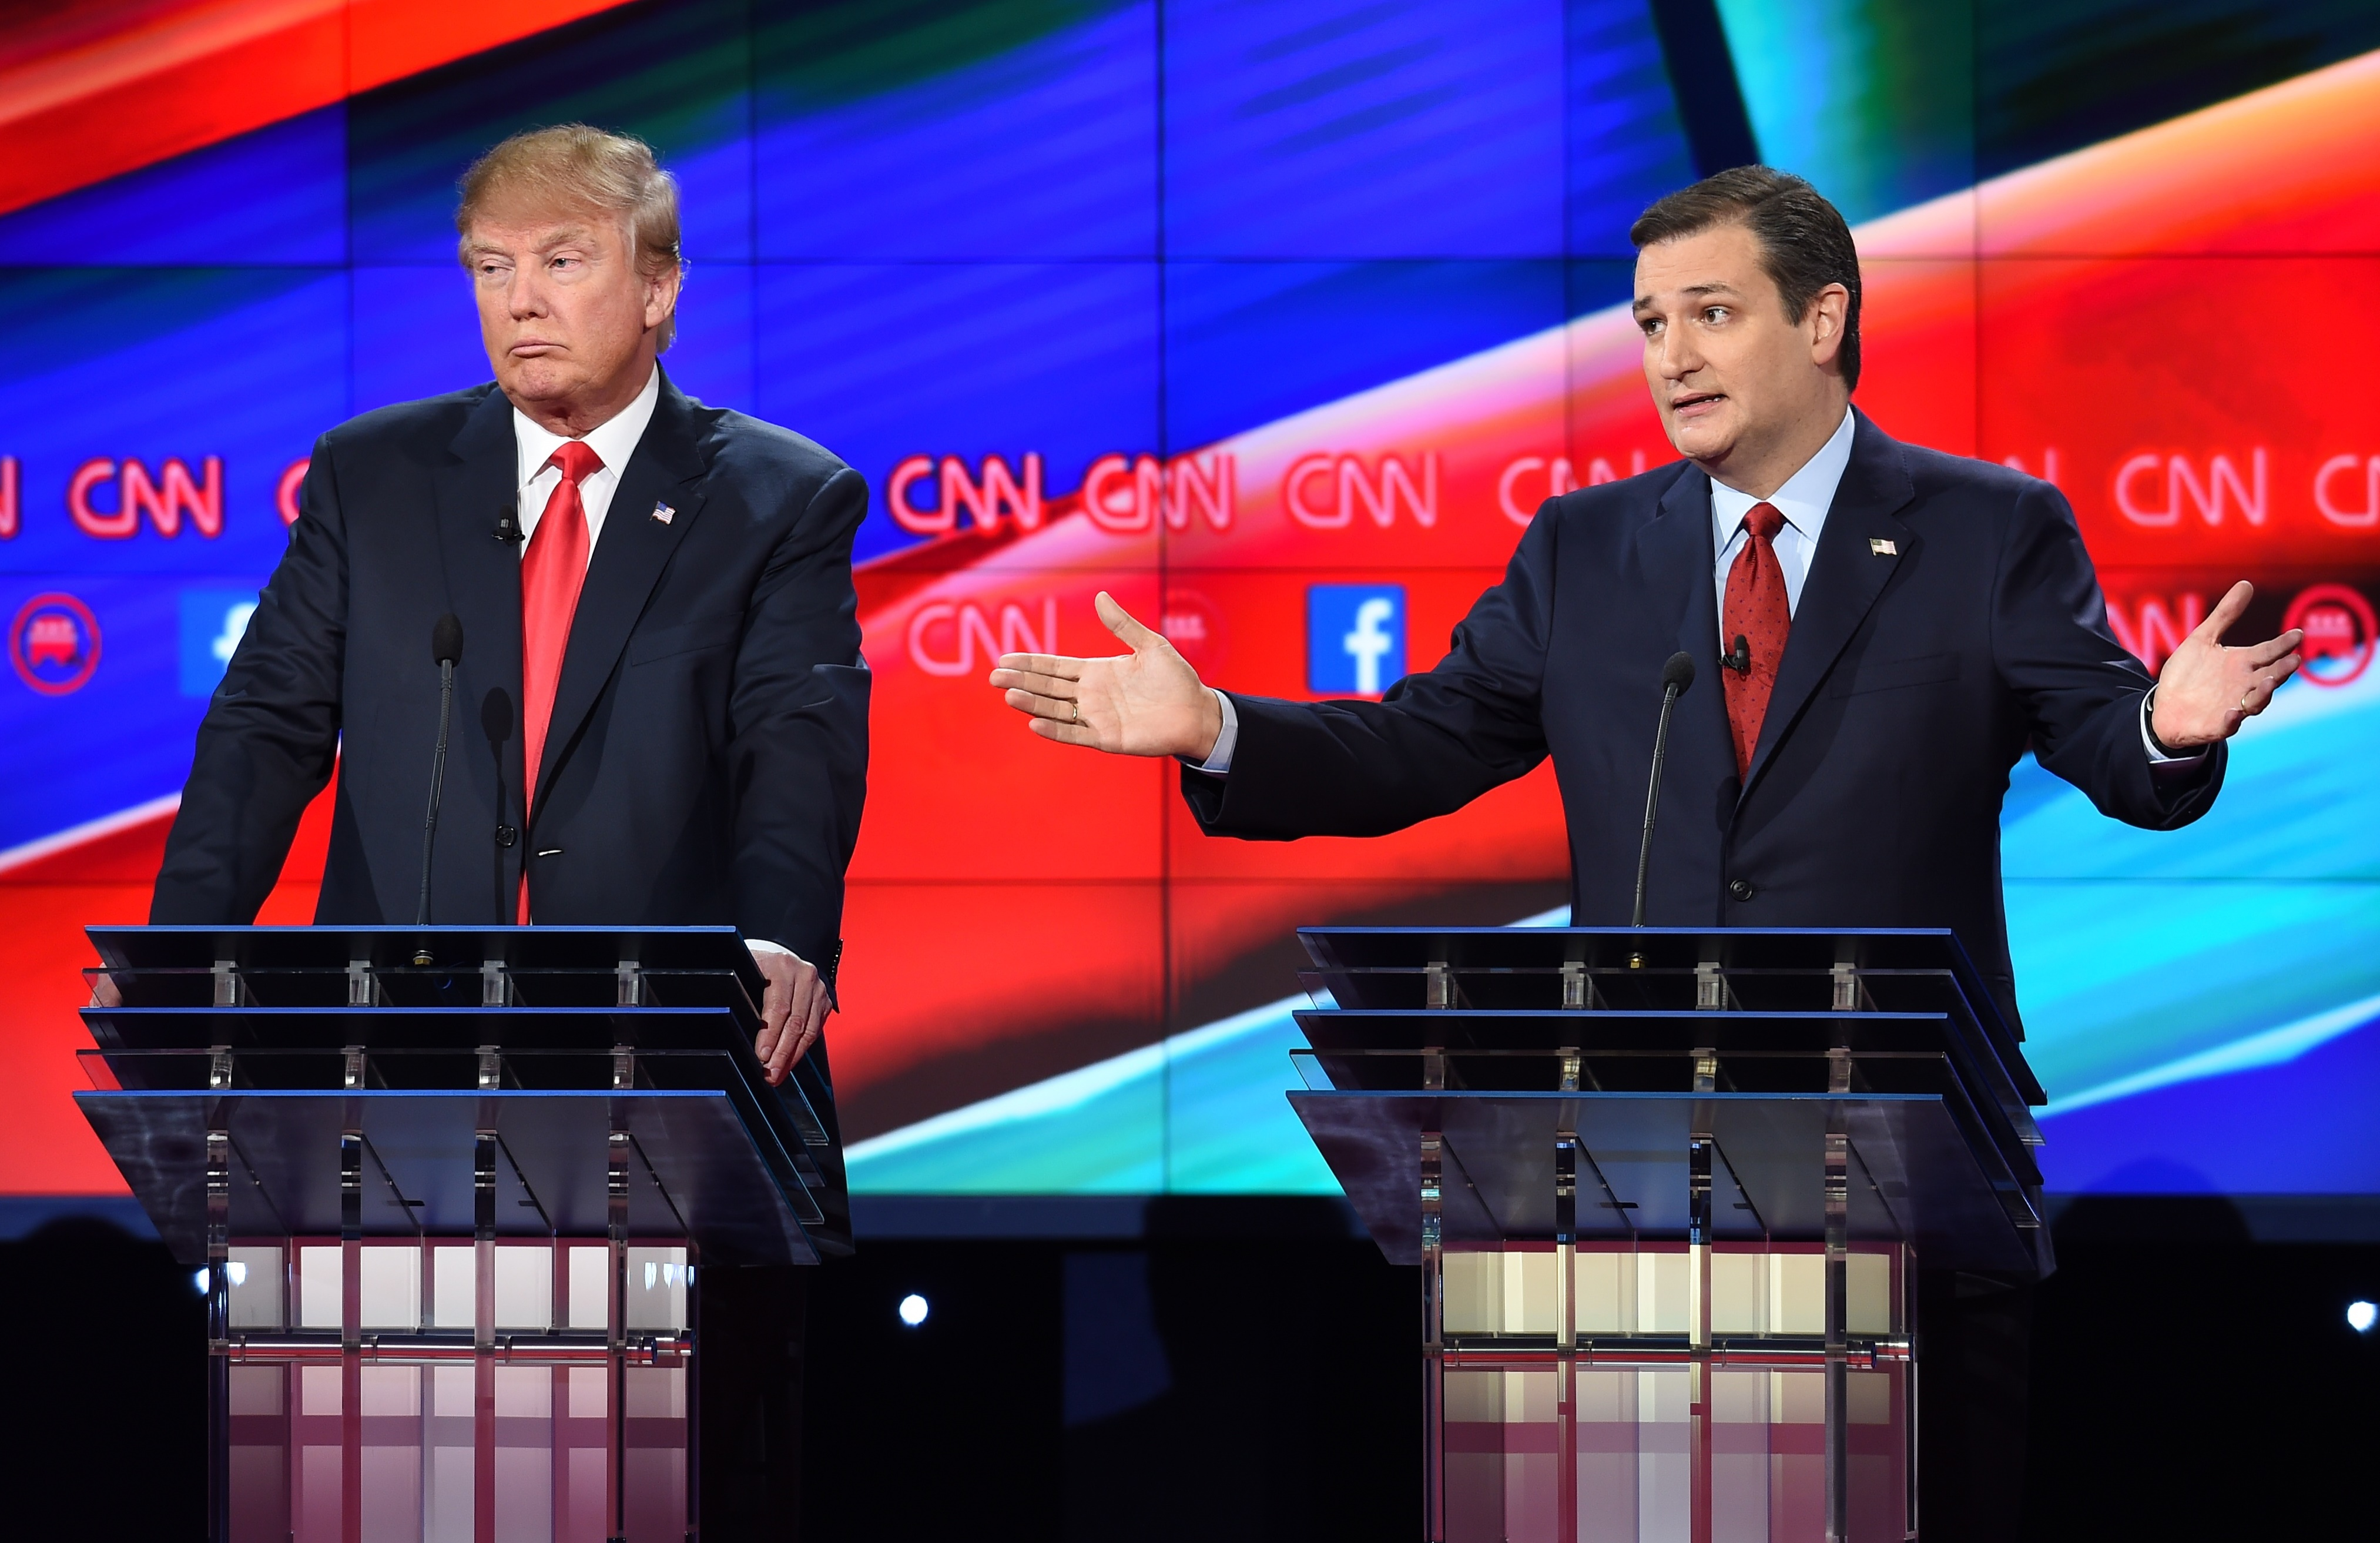 Donald Trump and Ted Cruz during the Republican Presidential Debate on Dec. 15, 2015 in Las Vegas, Nevada.